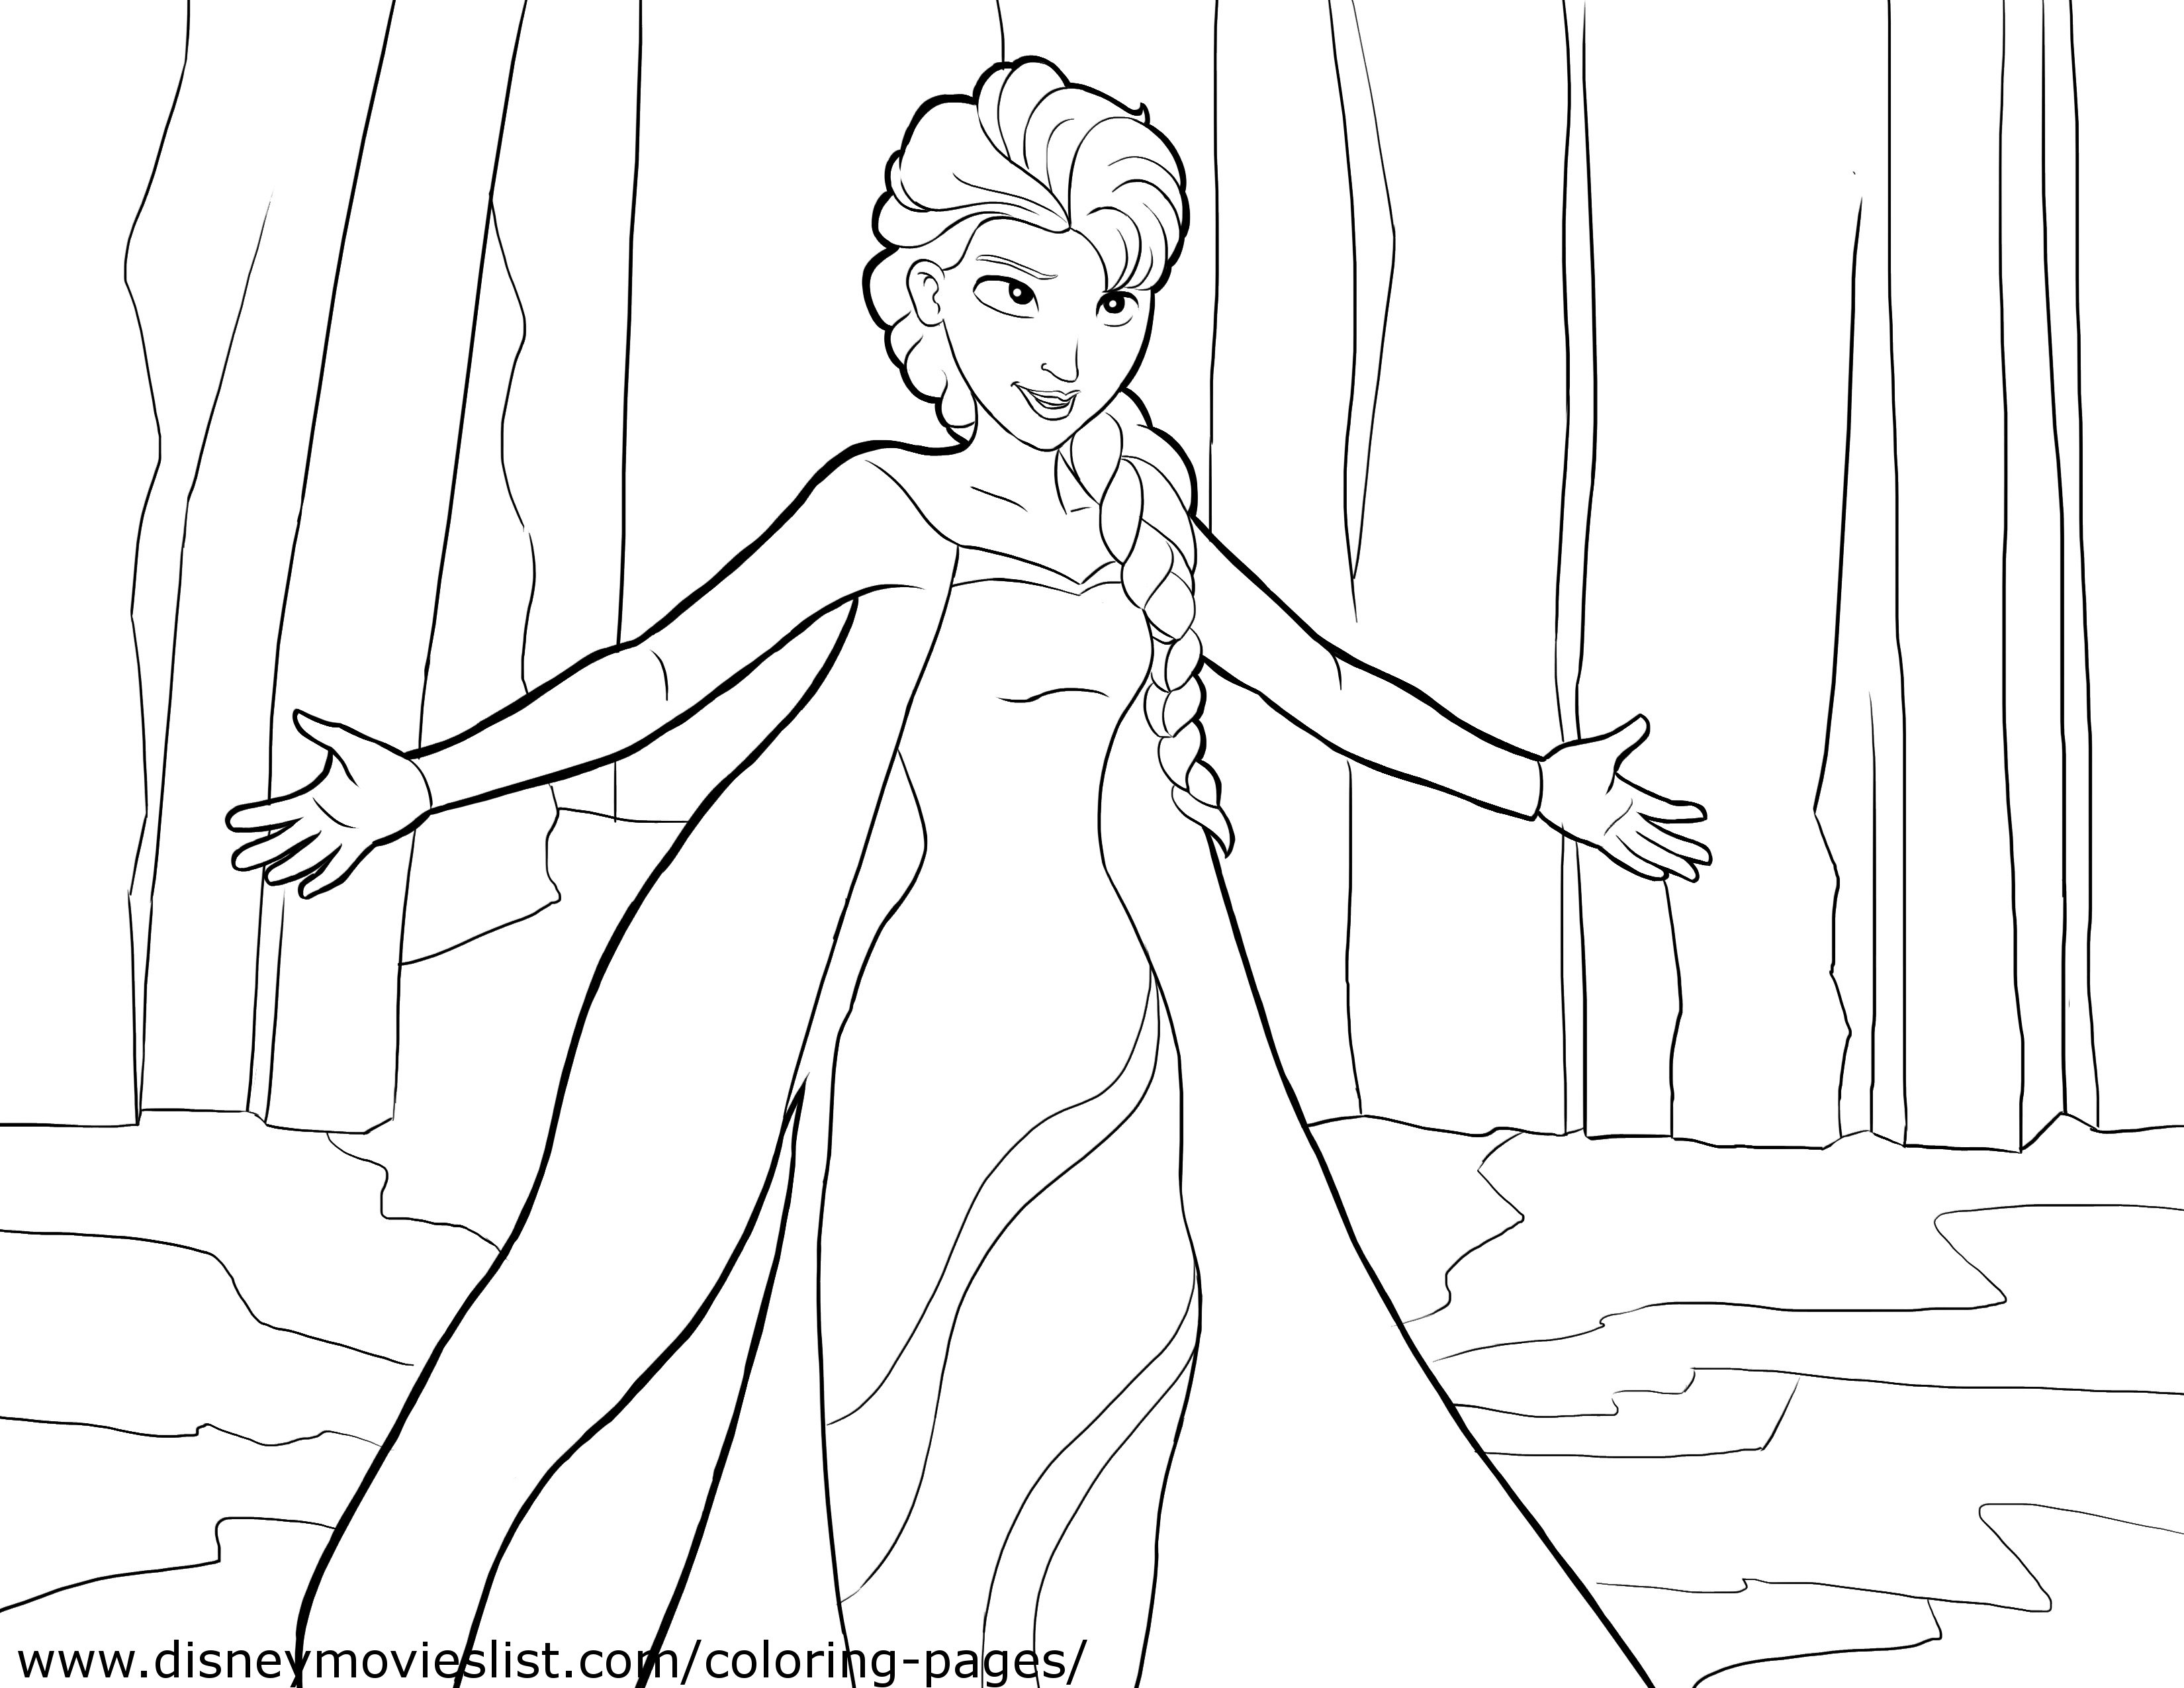 coloring pages disney frozen 01